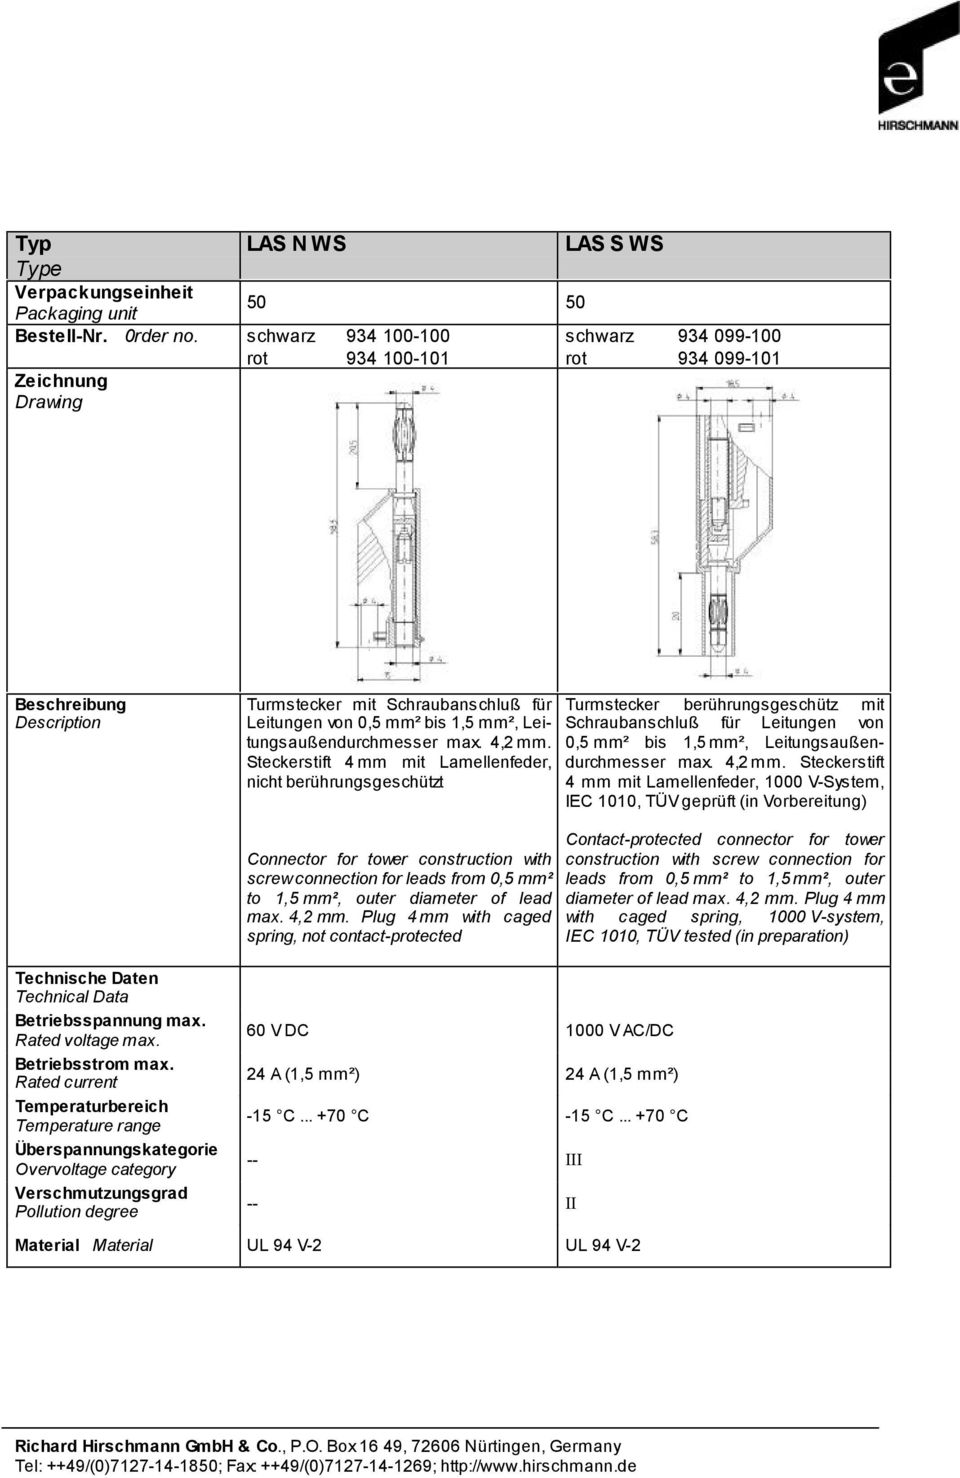 Steckerstift 4 mm mit Lamellenfeder, 1000 V-System, IEC 1010, TÜV geprüft (in Vorbereitung) Connector for tower construction with screw connection for leads from 0,5 mm² to 1,5 mm², outer diameter of